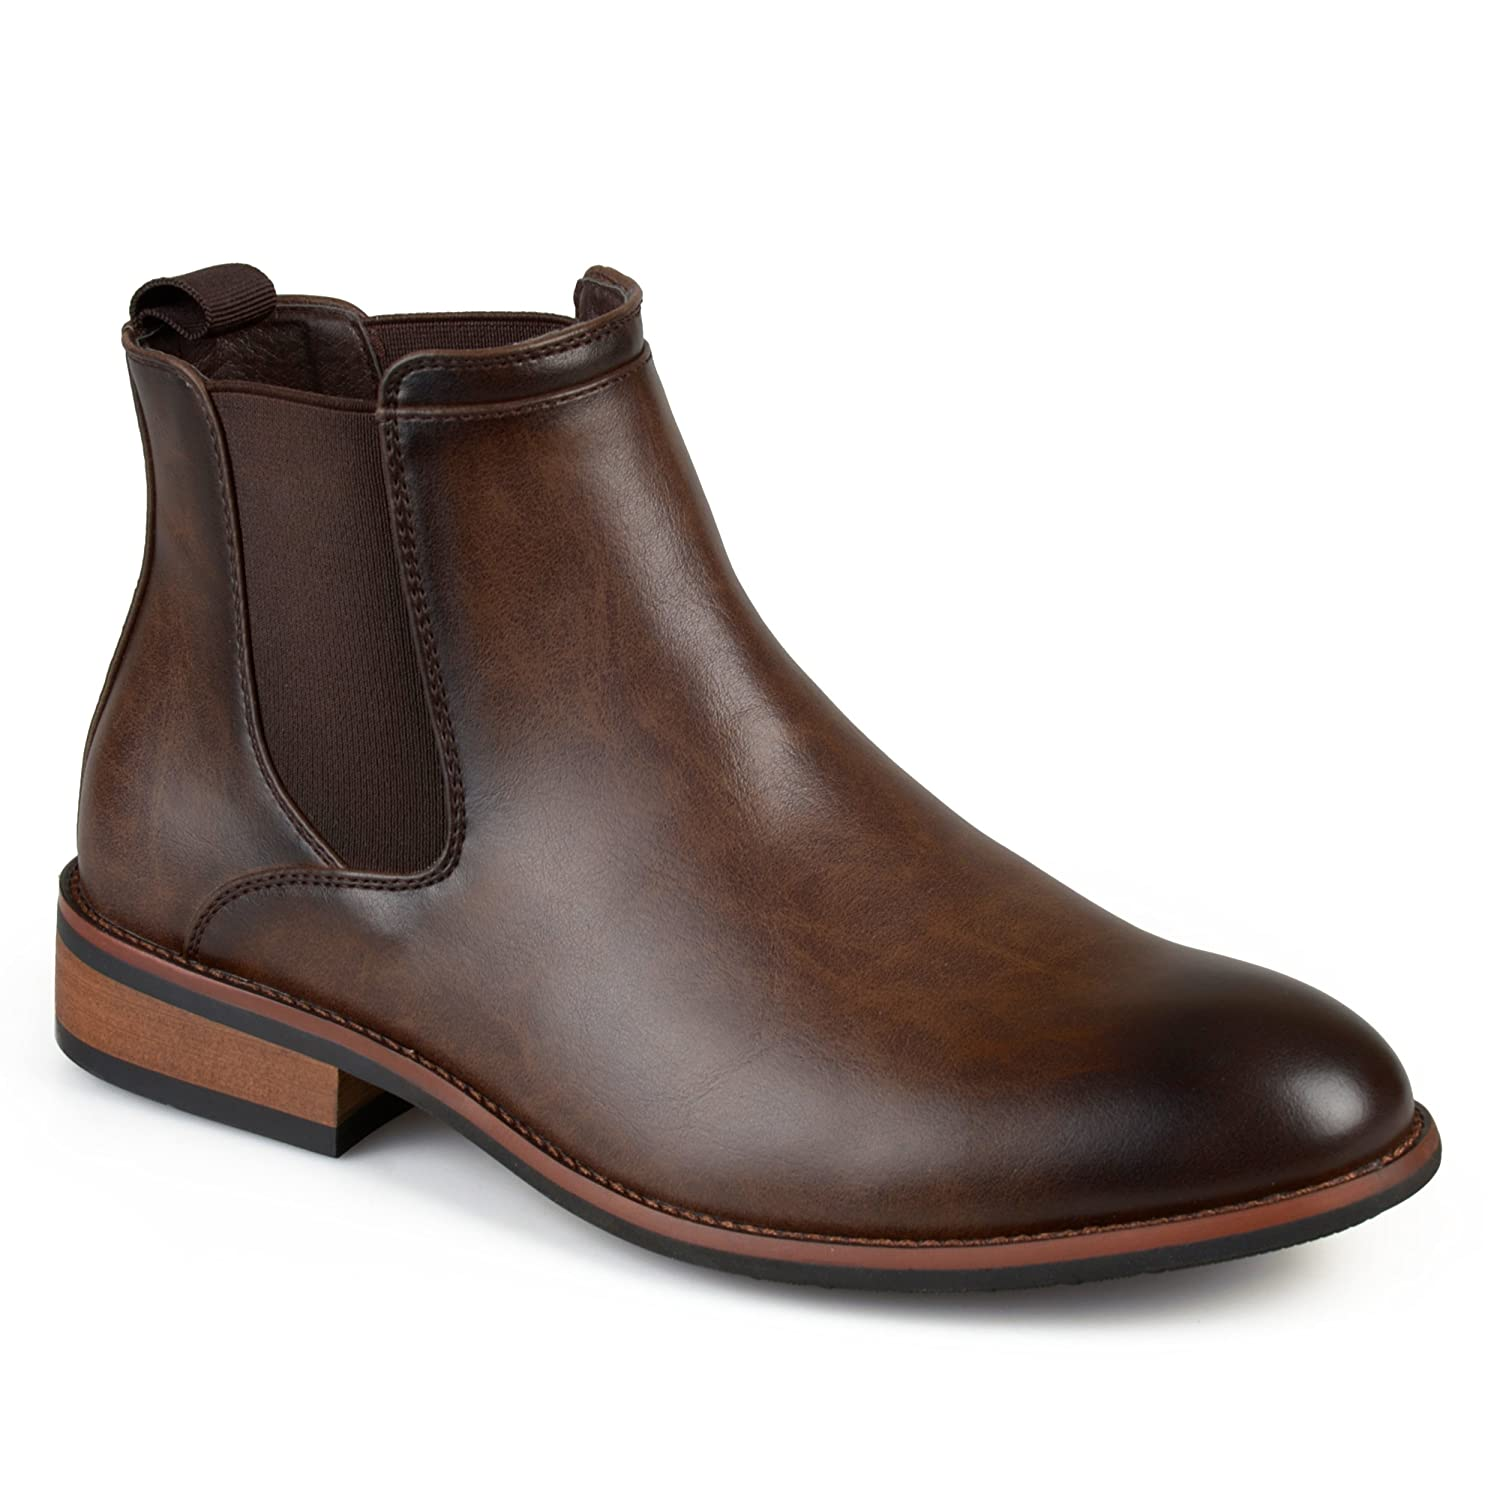 259022990b Mens Faux Leather High Top Round Toe Chelsea Dress Boots